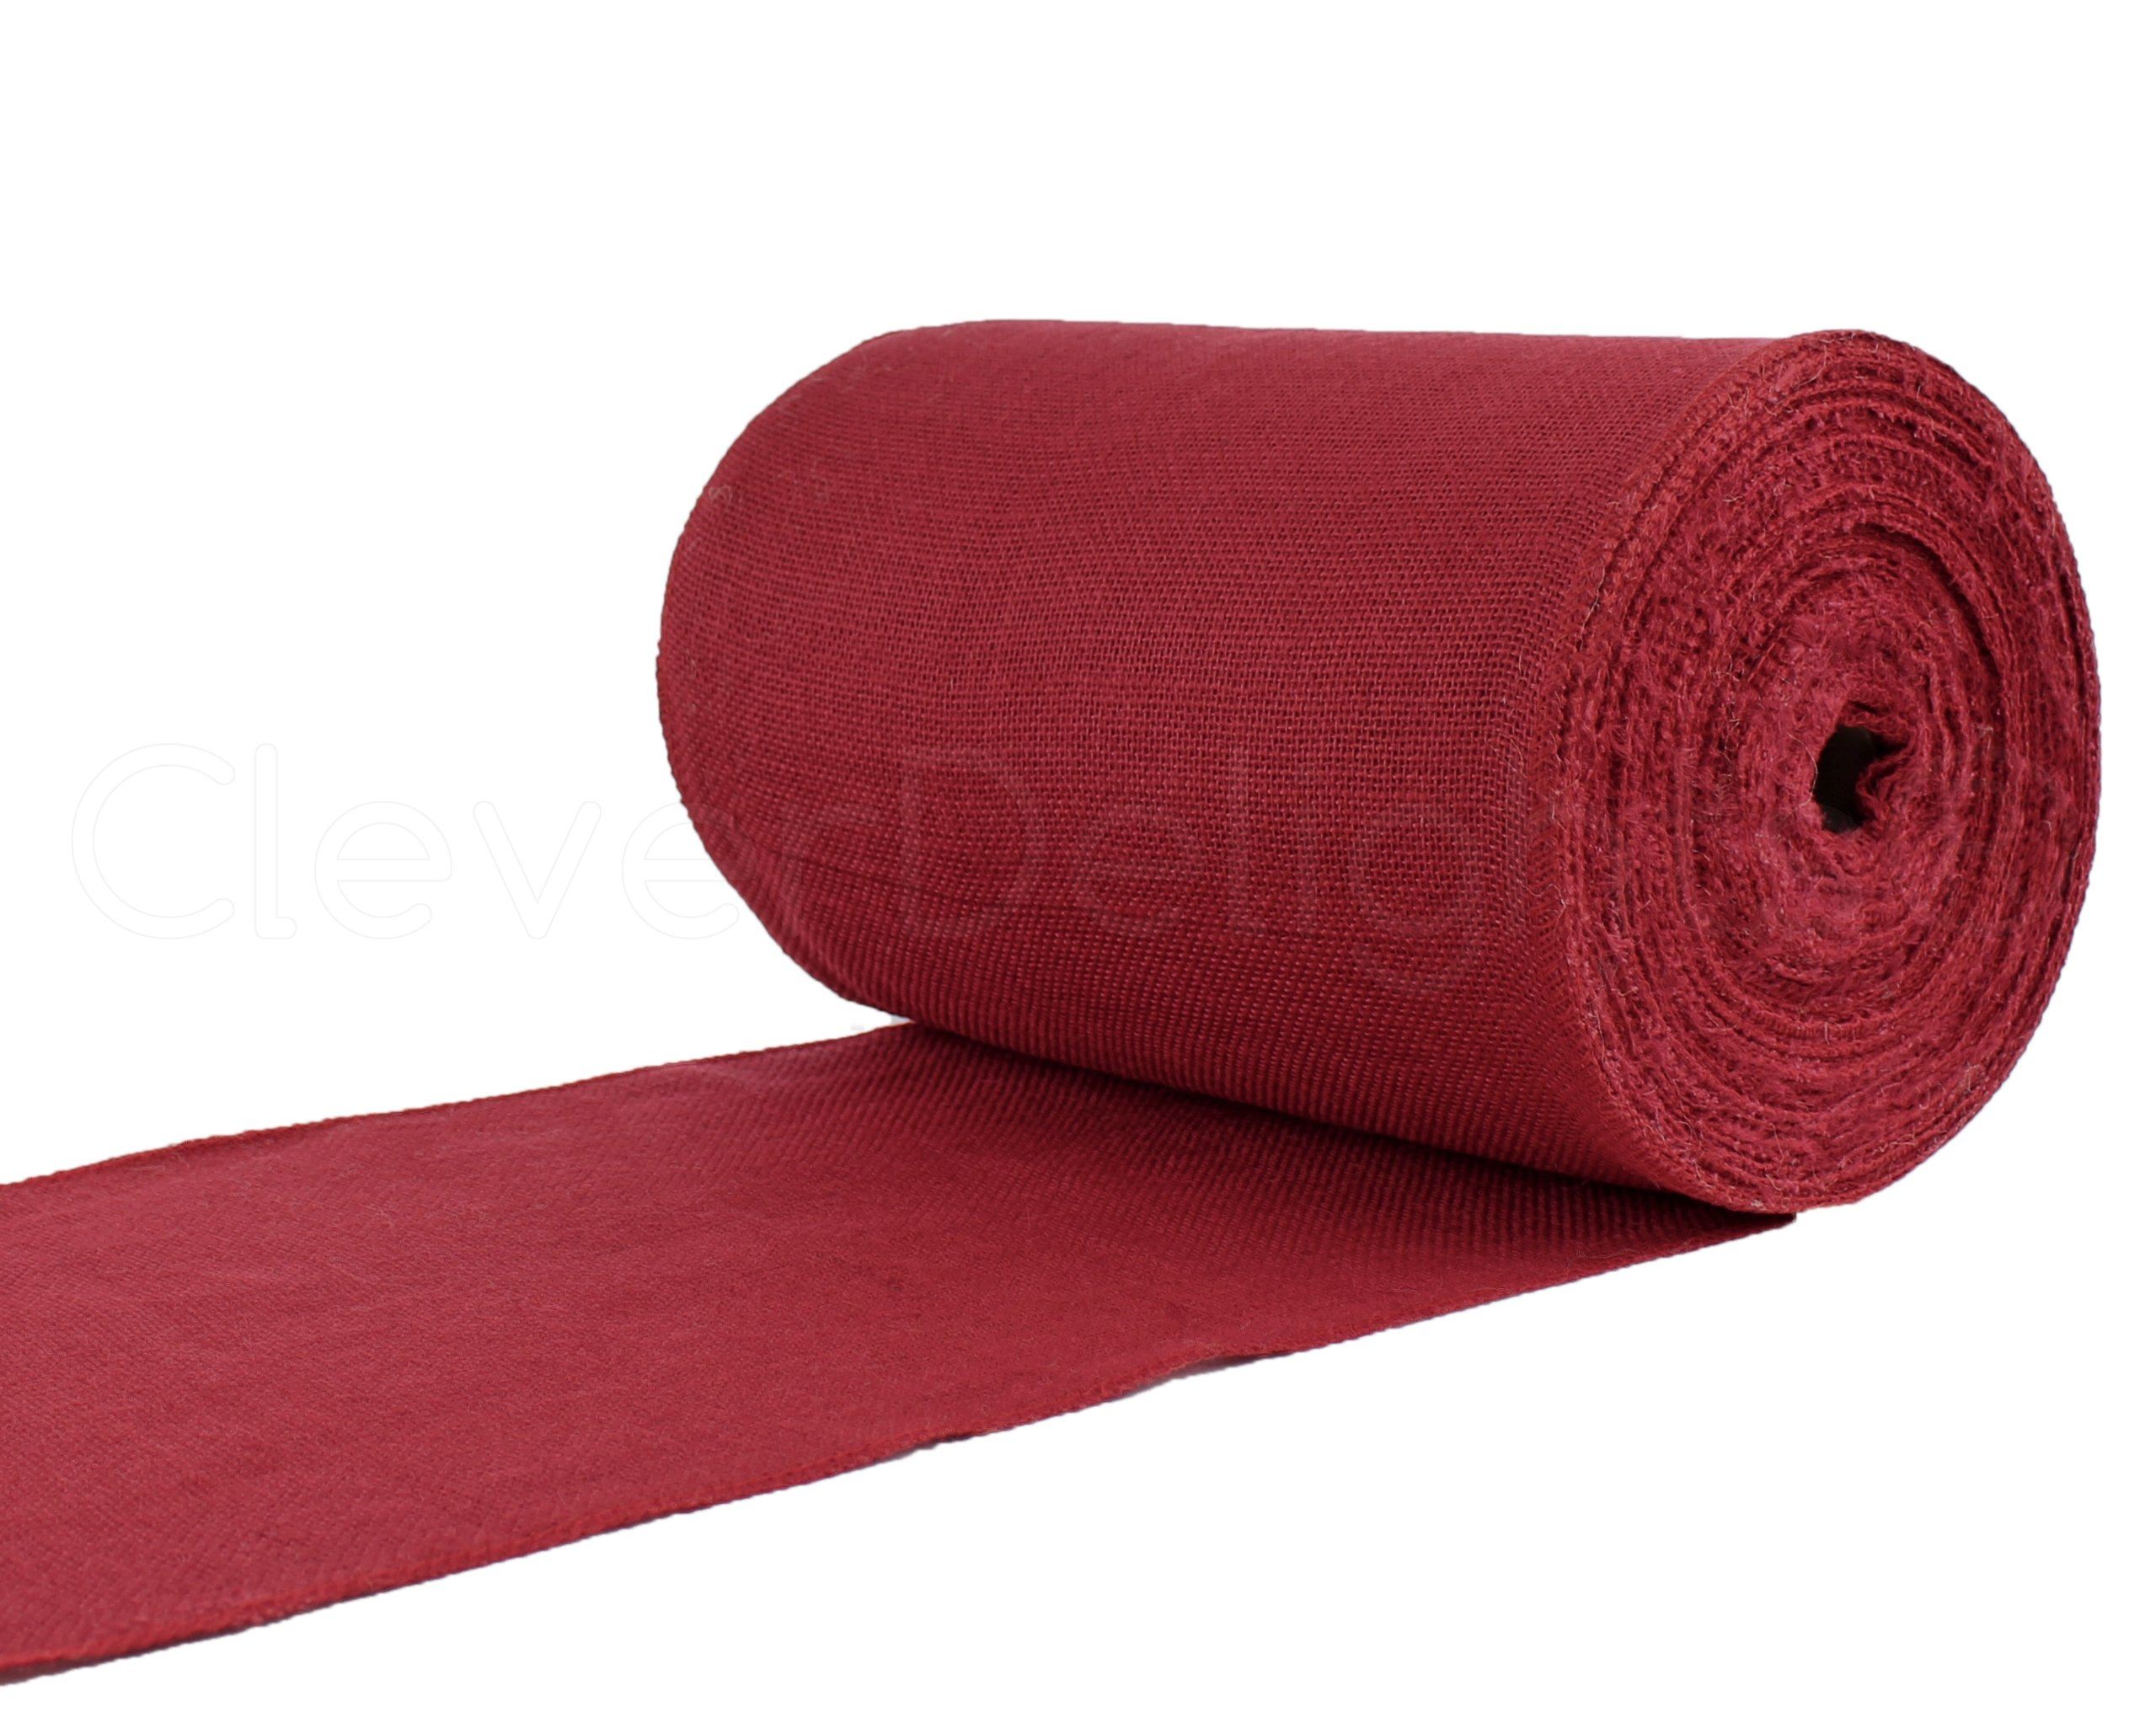 CleverDelights 12'' Premium Red Burlap Roll - 50 Yards - No-Fray Finished Edges - Natural Jute Burlap Fabric